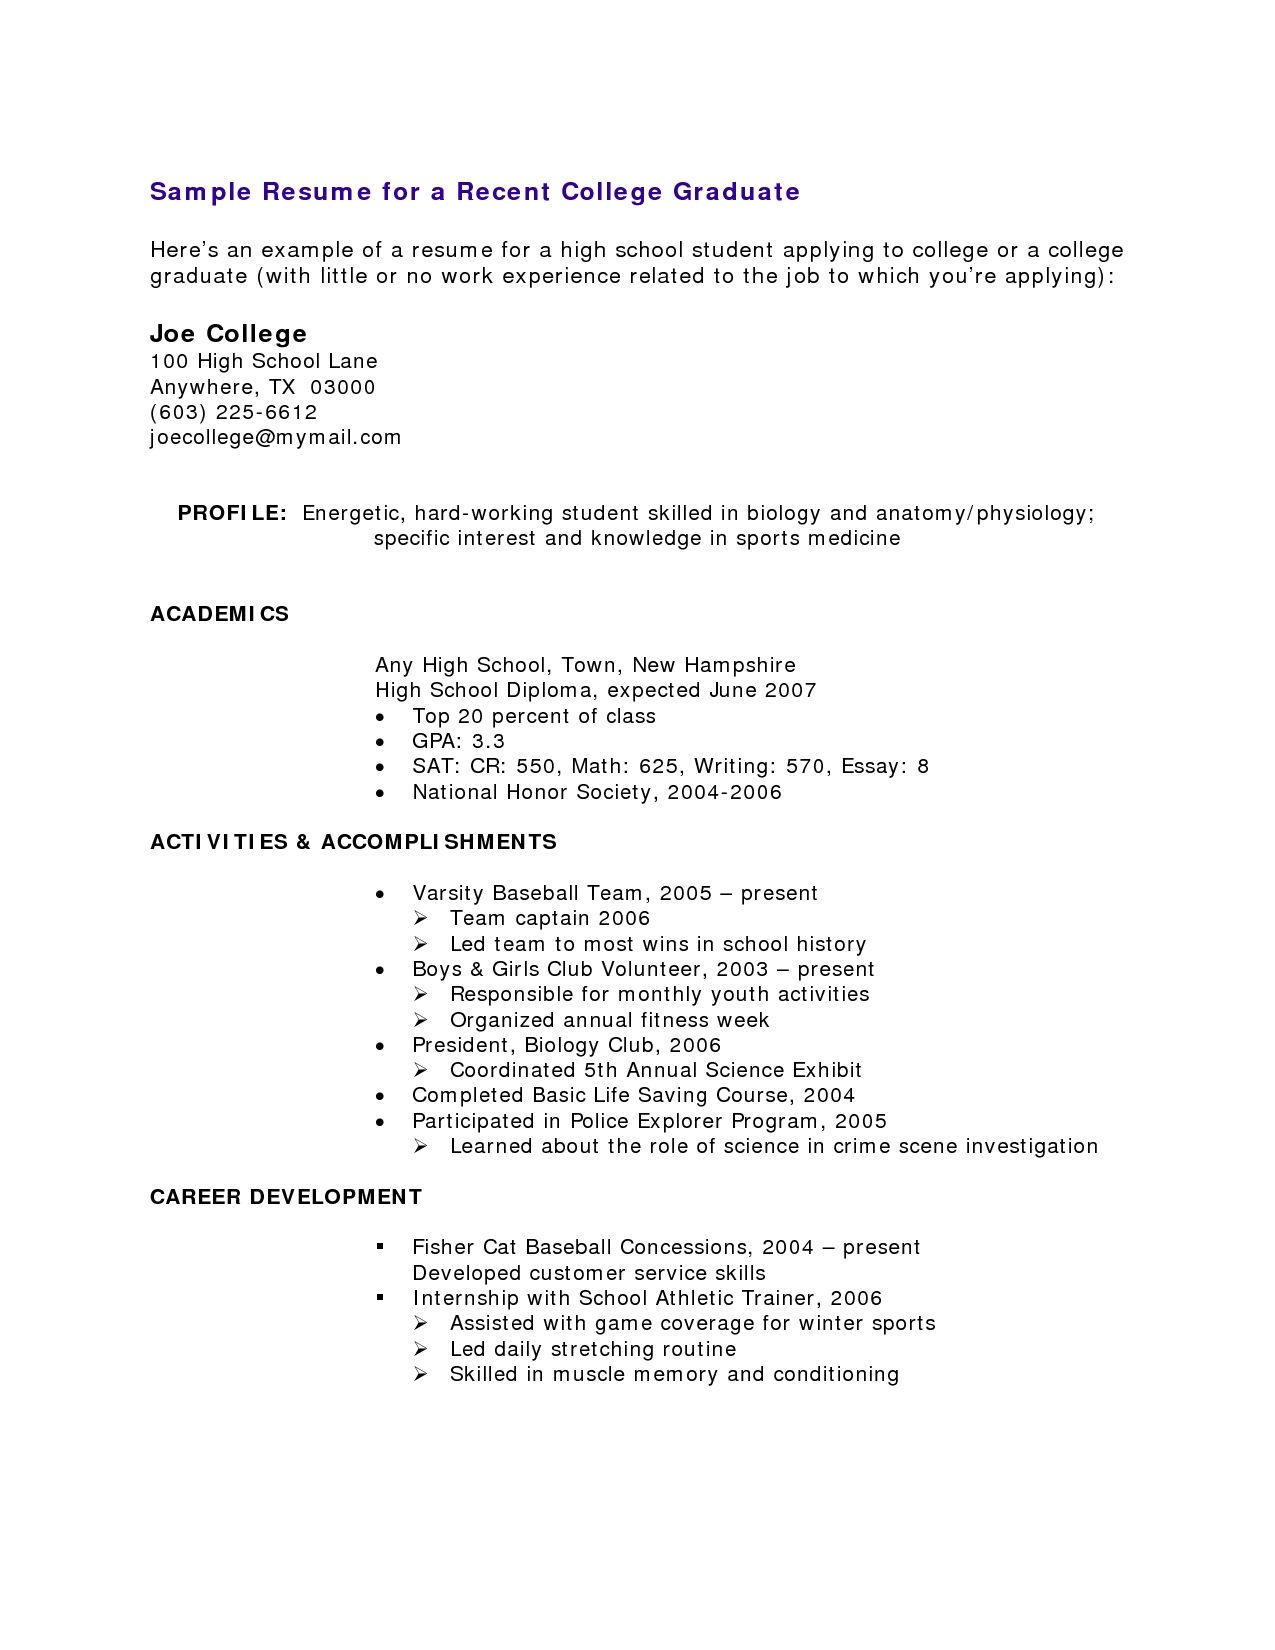 High School Student Resume With No Work Experience Resume Examples – Resume Examples for Jobs with Little Experience